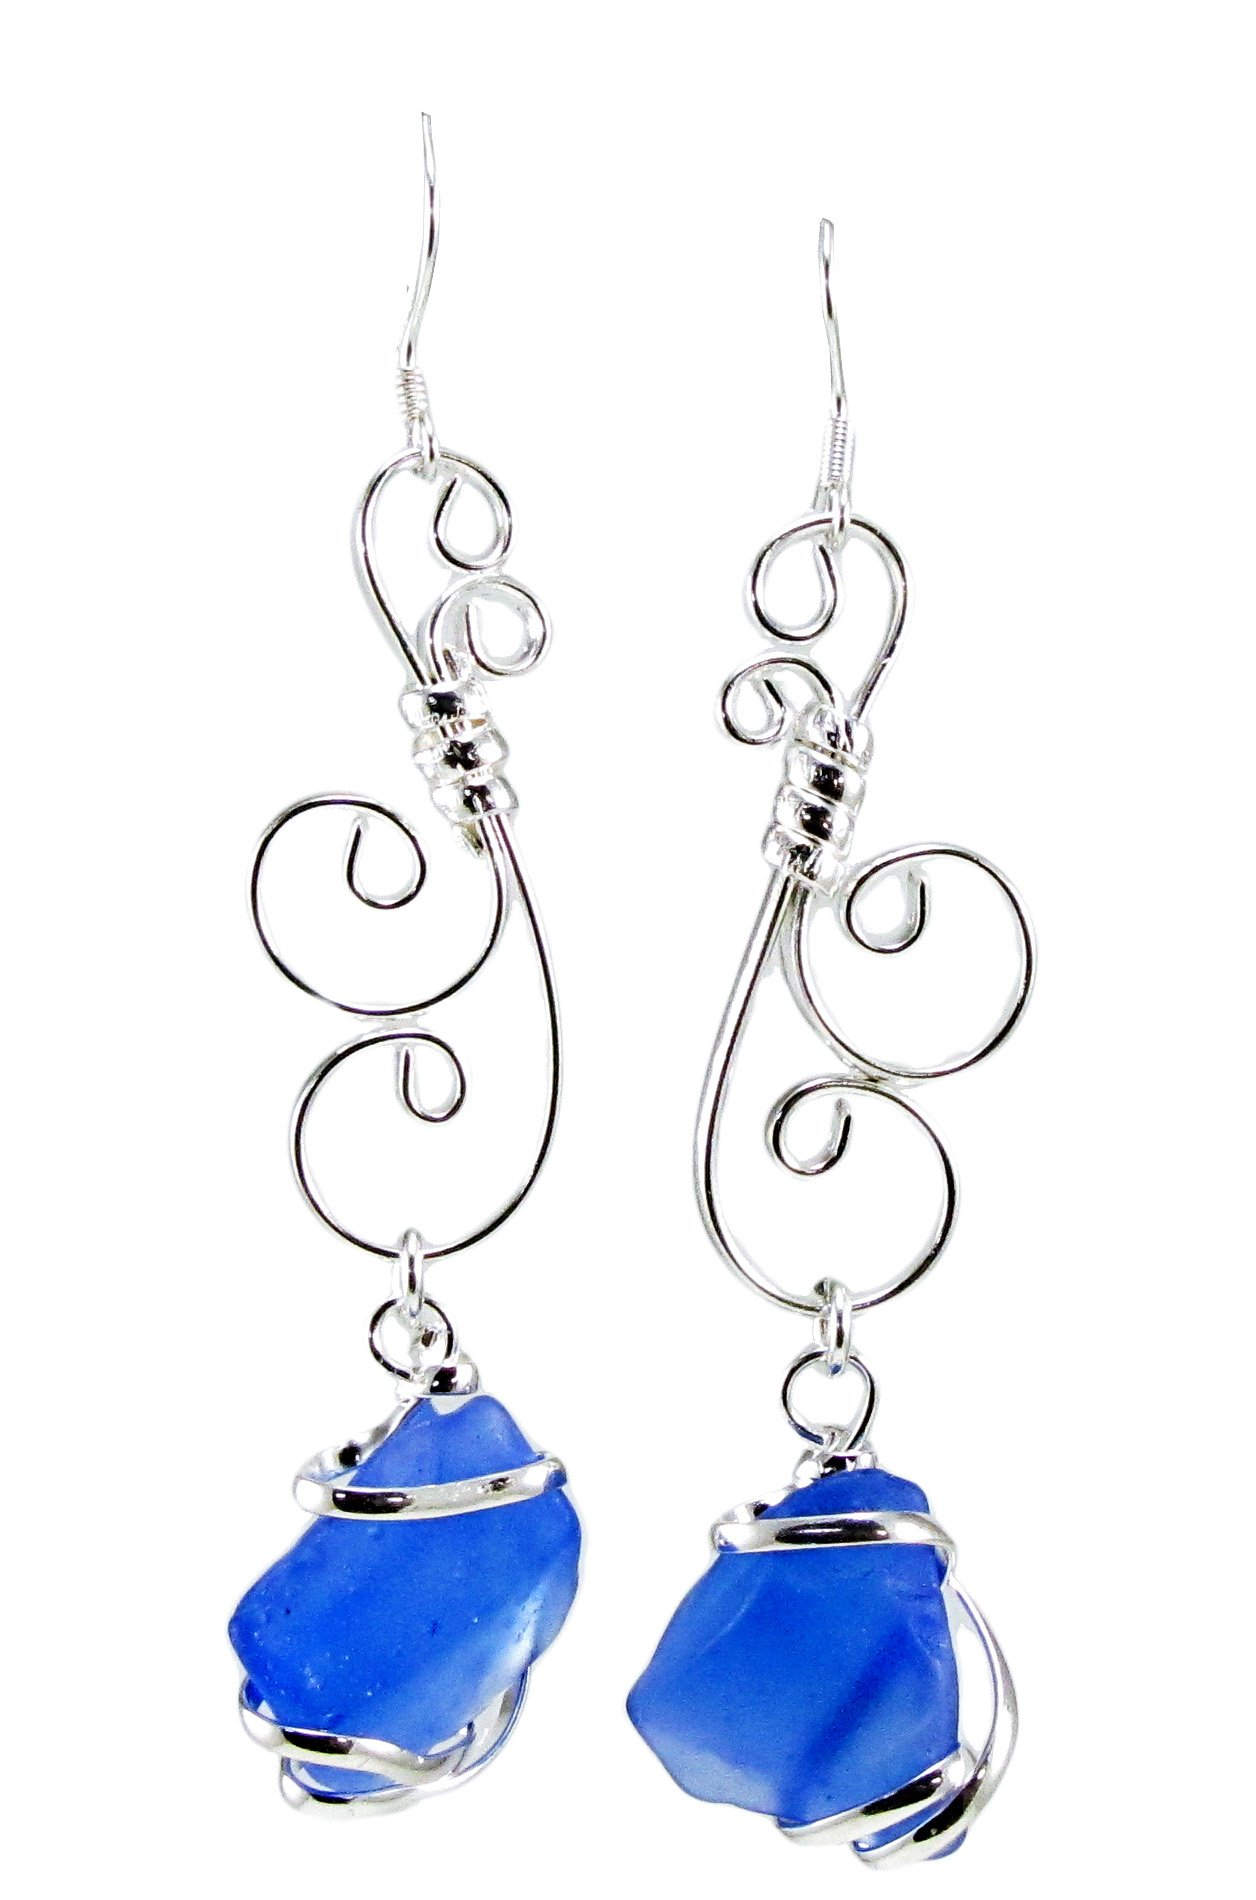 Sea Glass Hand-Crafted Wire Wrapped Filigree Drop Earrings in Cobalt Blue